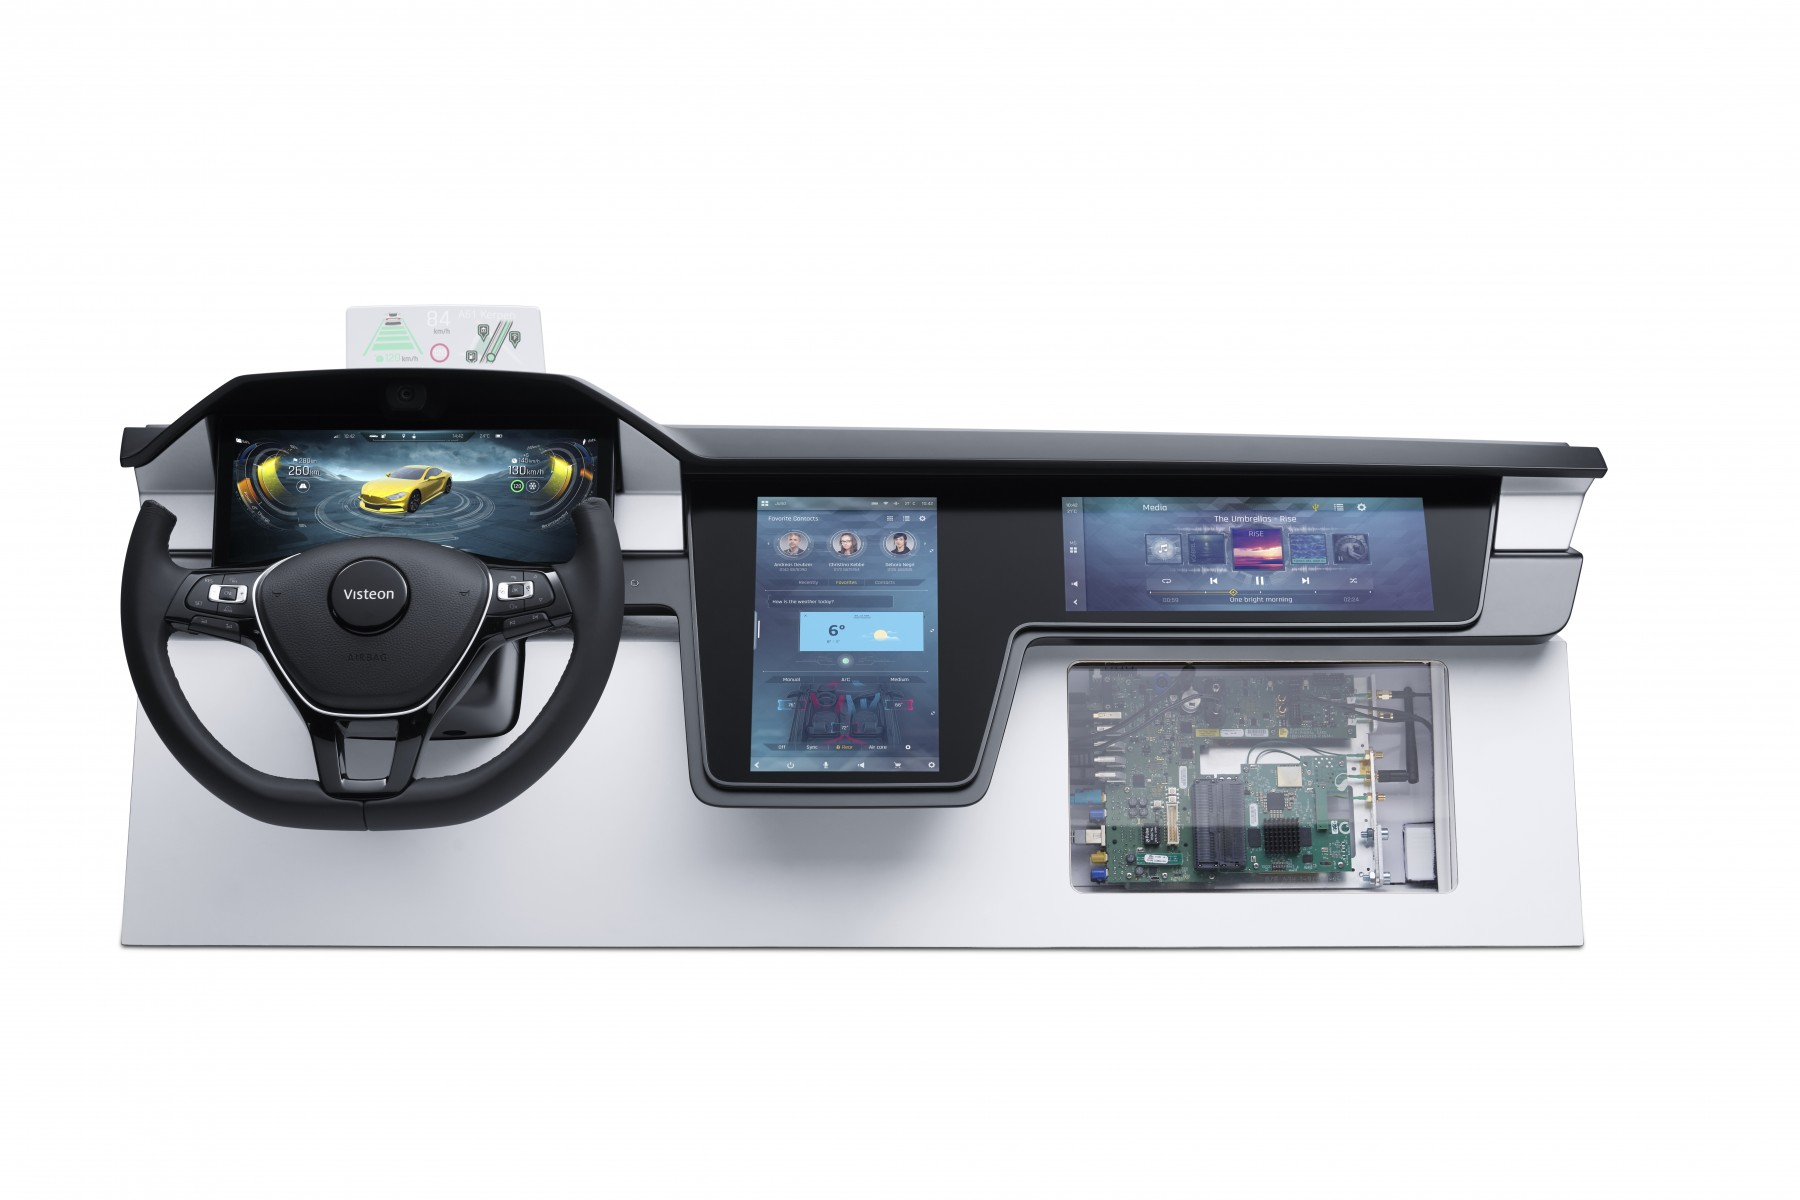 Visteon's SmartCore™ cockpit domain controller with Tencent technology